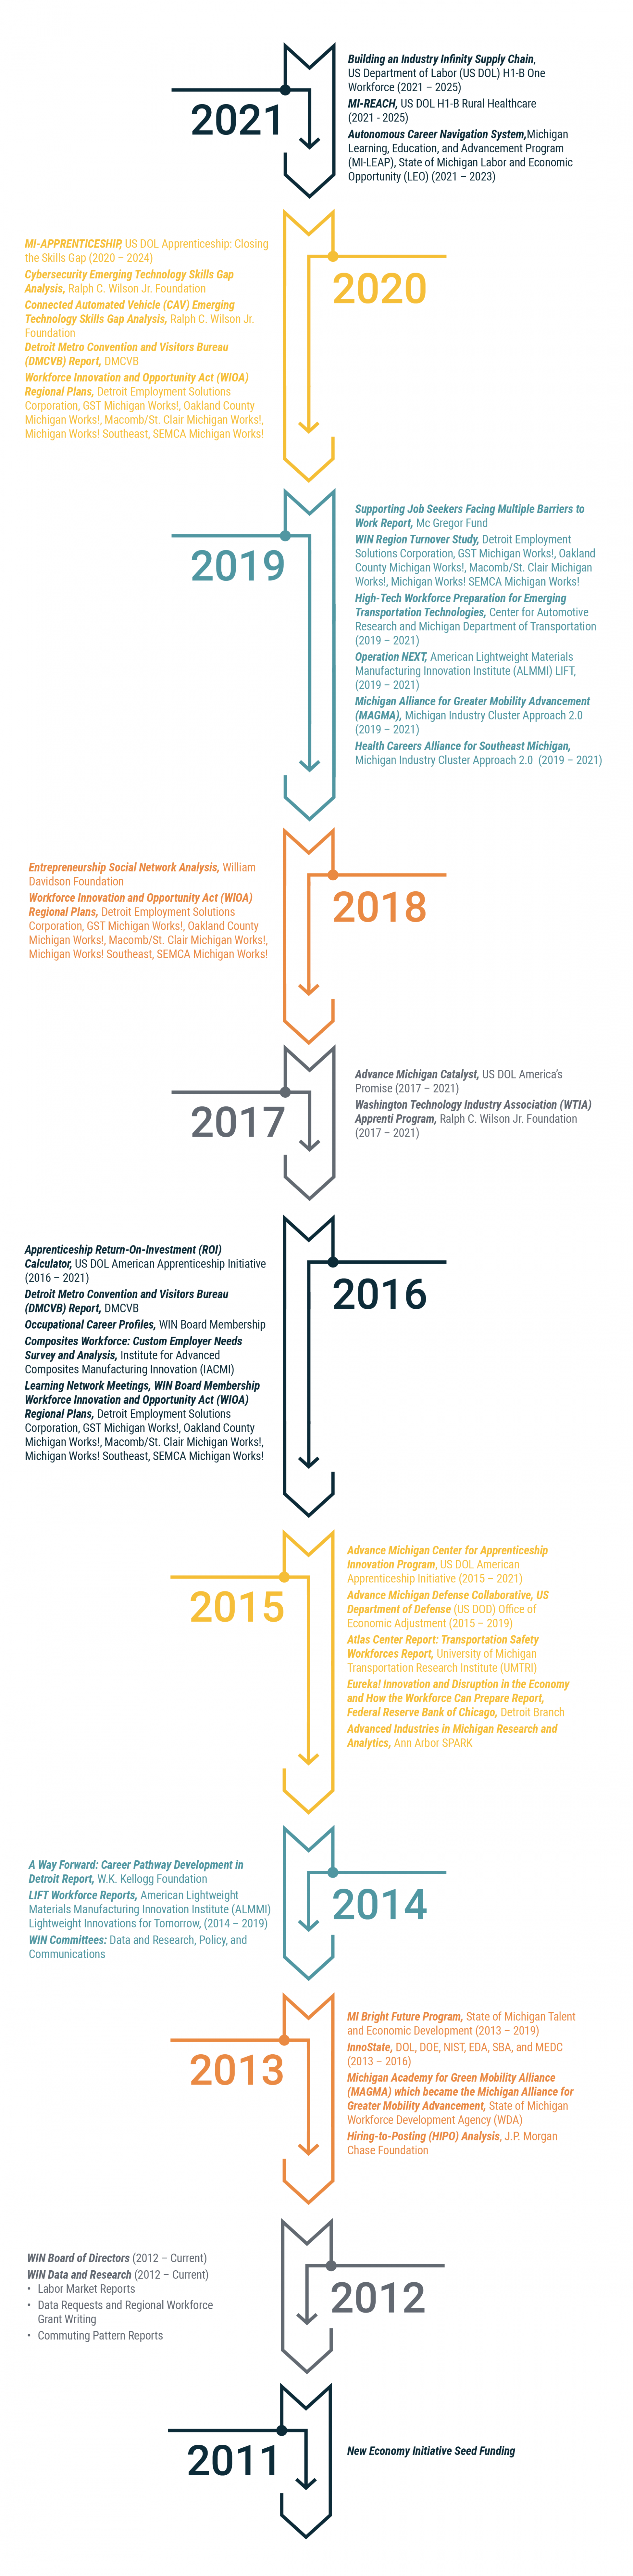 WIN_10yr_timeline-graphic_072821